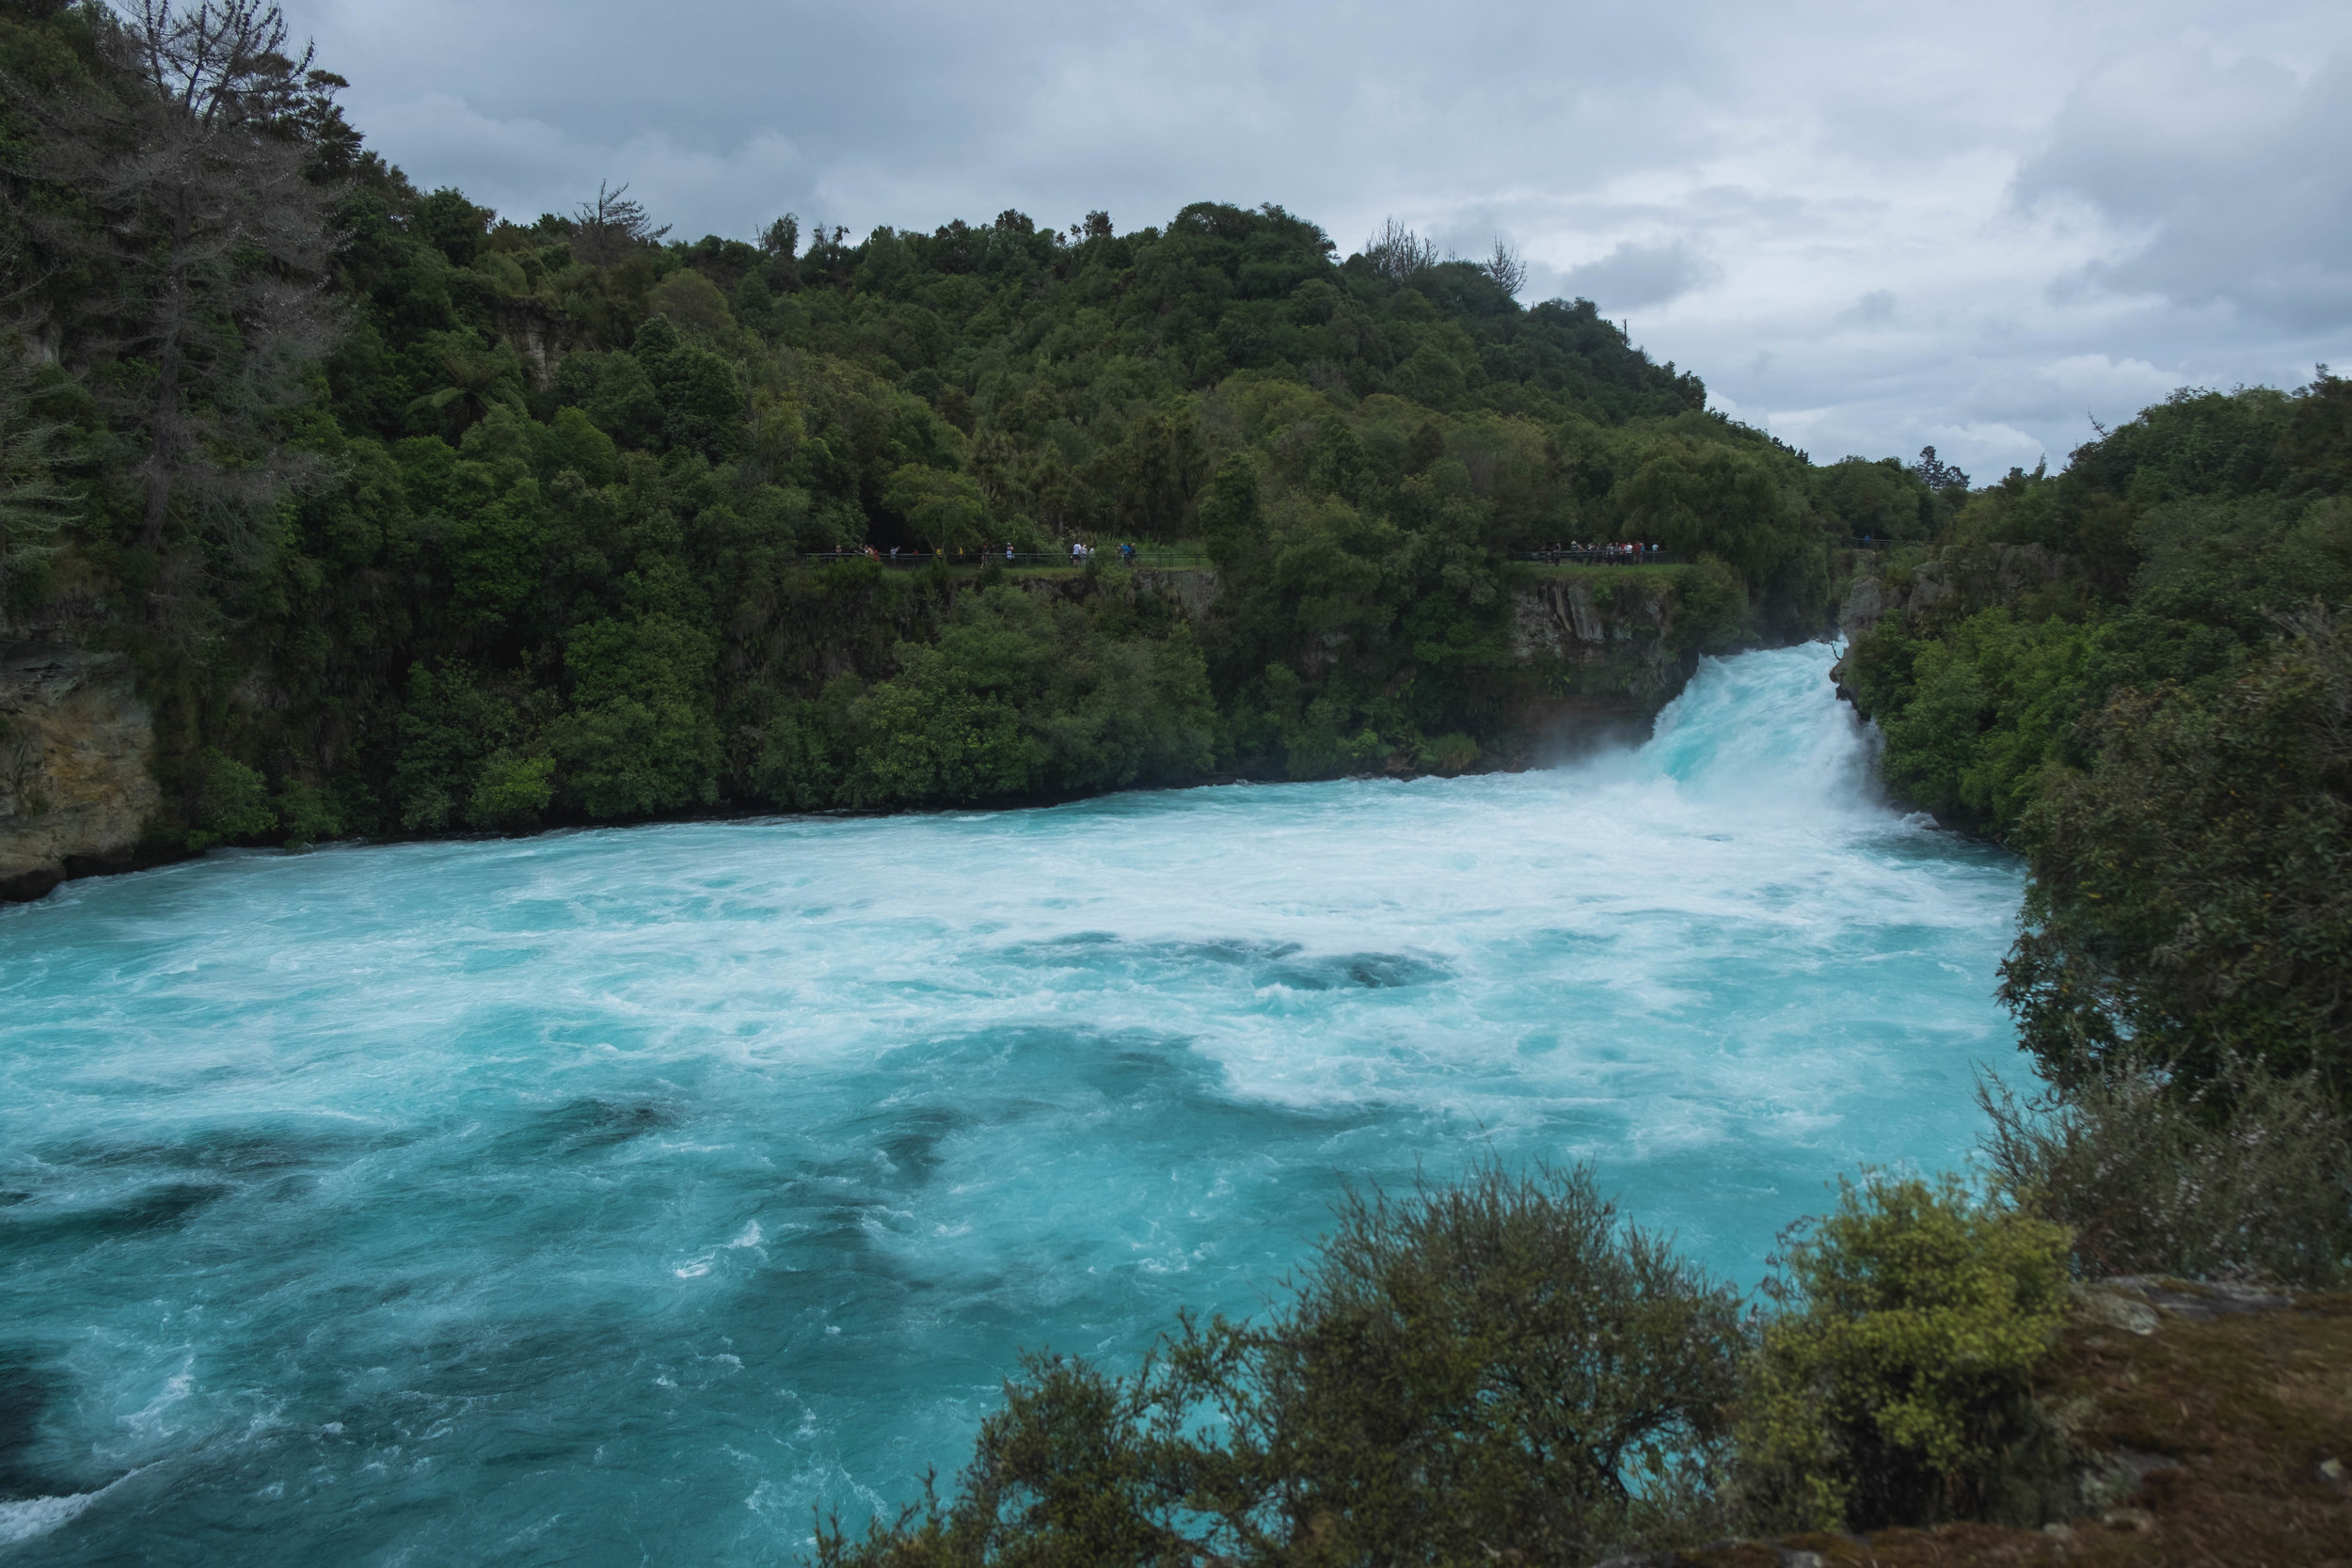 Huka Falls! The water was definitely the bluest we've seen!